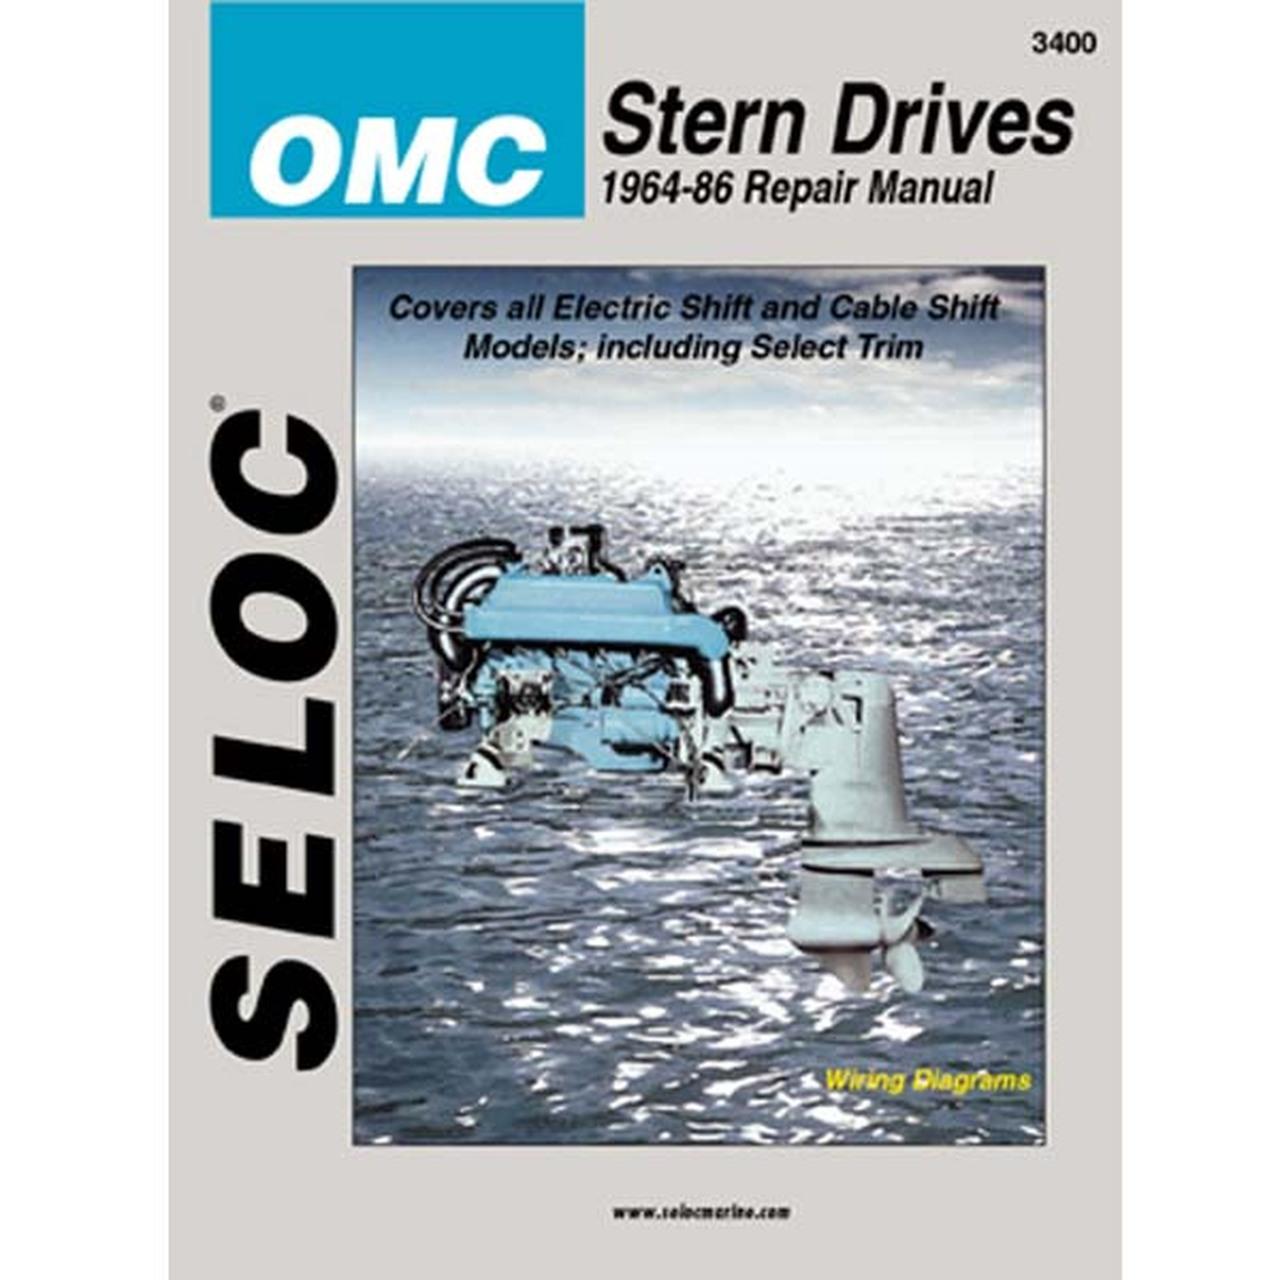 Seloc Service Manual, OMC Sterndrive 1964 - 1986 on